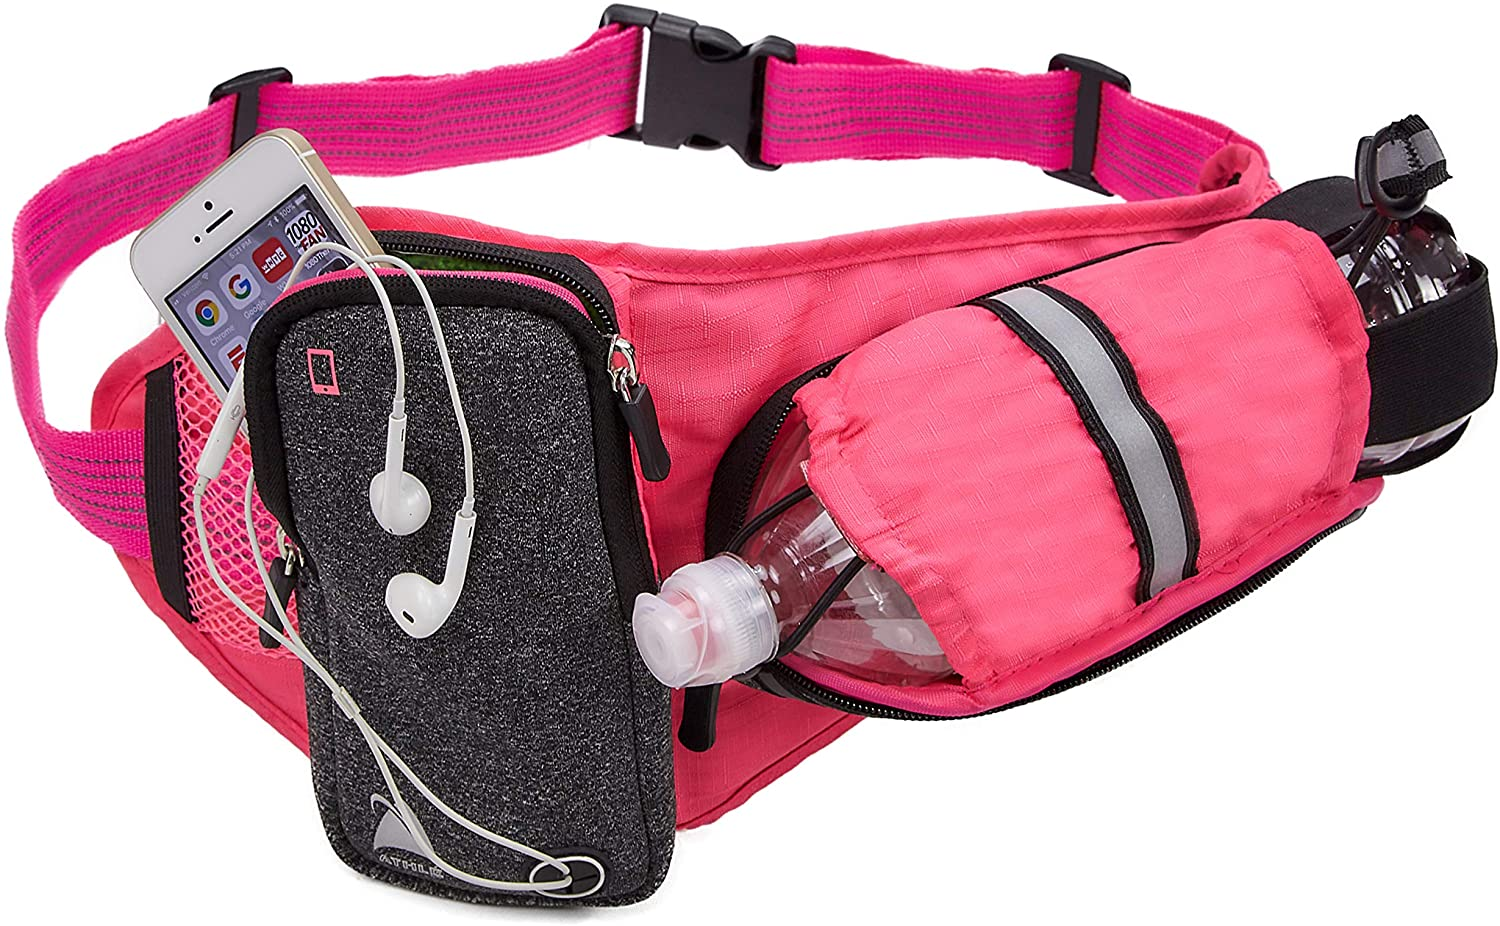 Athlé Running Belt – Horizontal Water Bottle Pouch, Large Fanny Pack Pocket Fits All Phones and Wallet, Adjustable One Size Fits All Waist Band, Key Clip, 360° Reflective